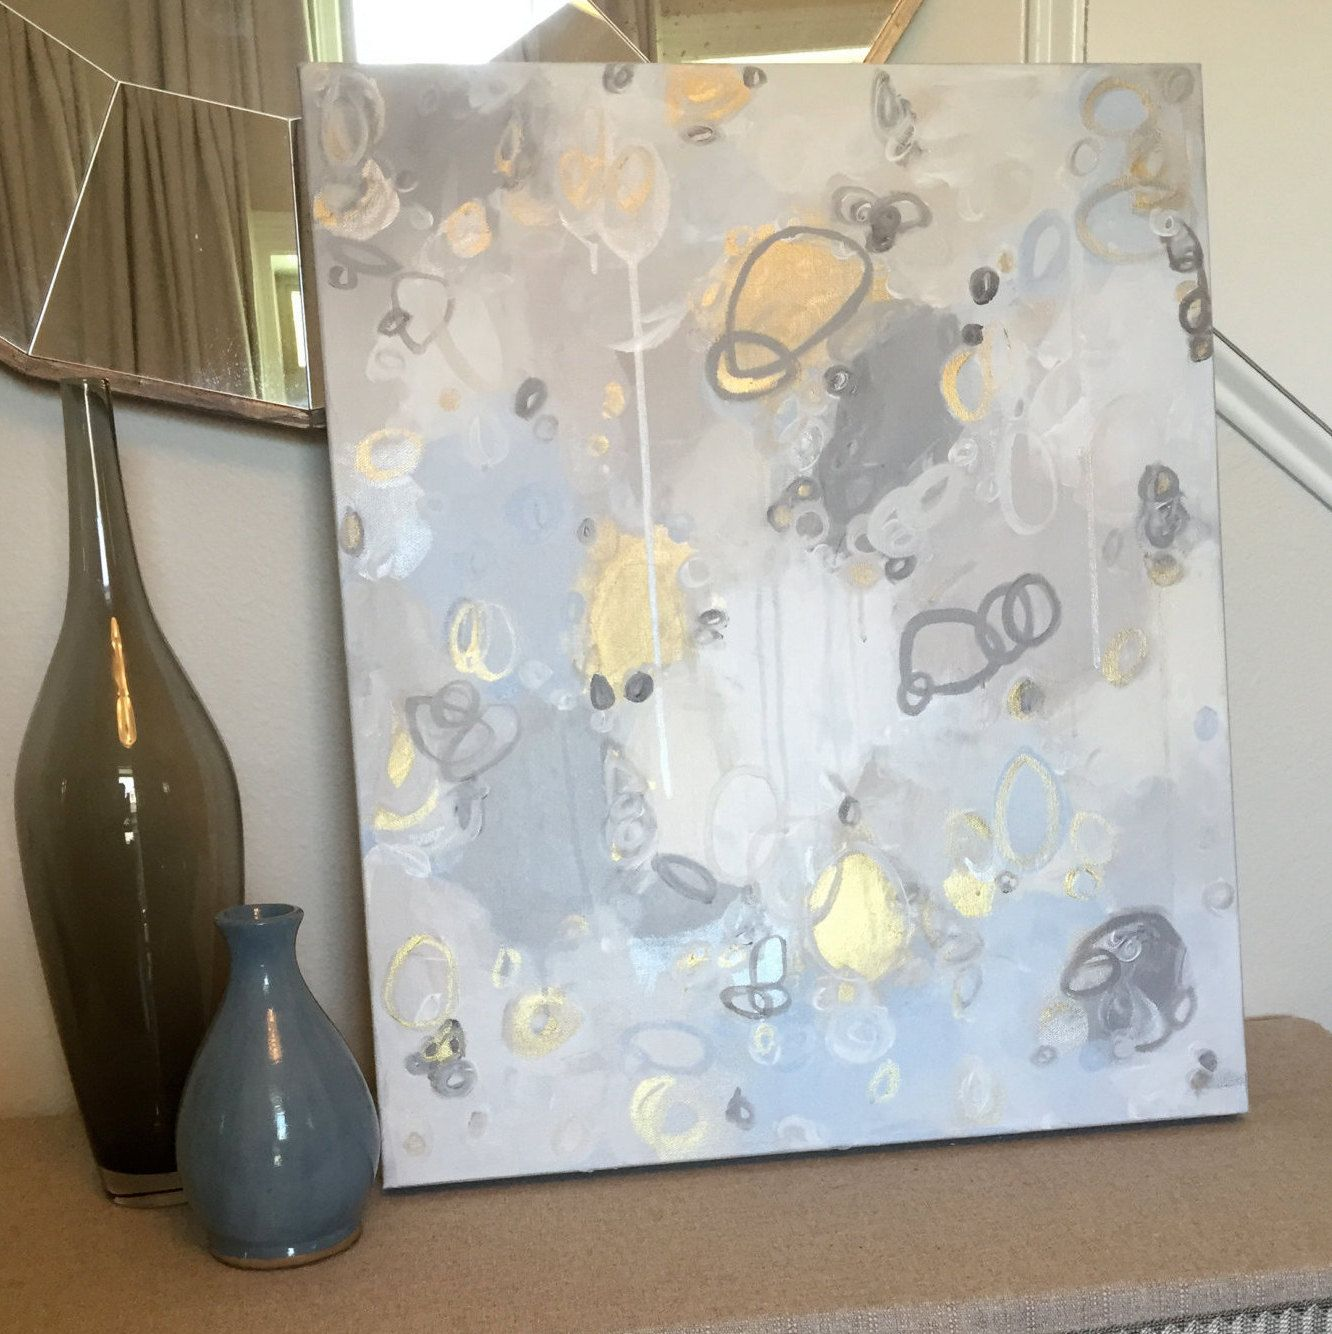 2274c5bc231 Original Abstract Blue, Gray, Charcoal, Taupe, Gold, Brass, White, Cream  Painting by CRESCENTandGOLD on Etsy